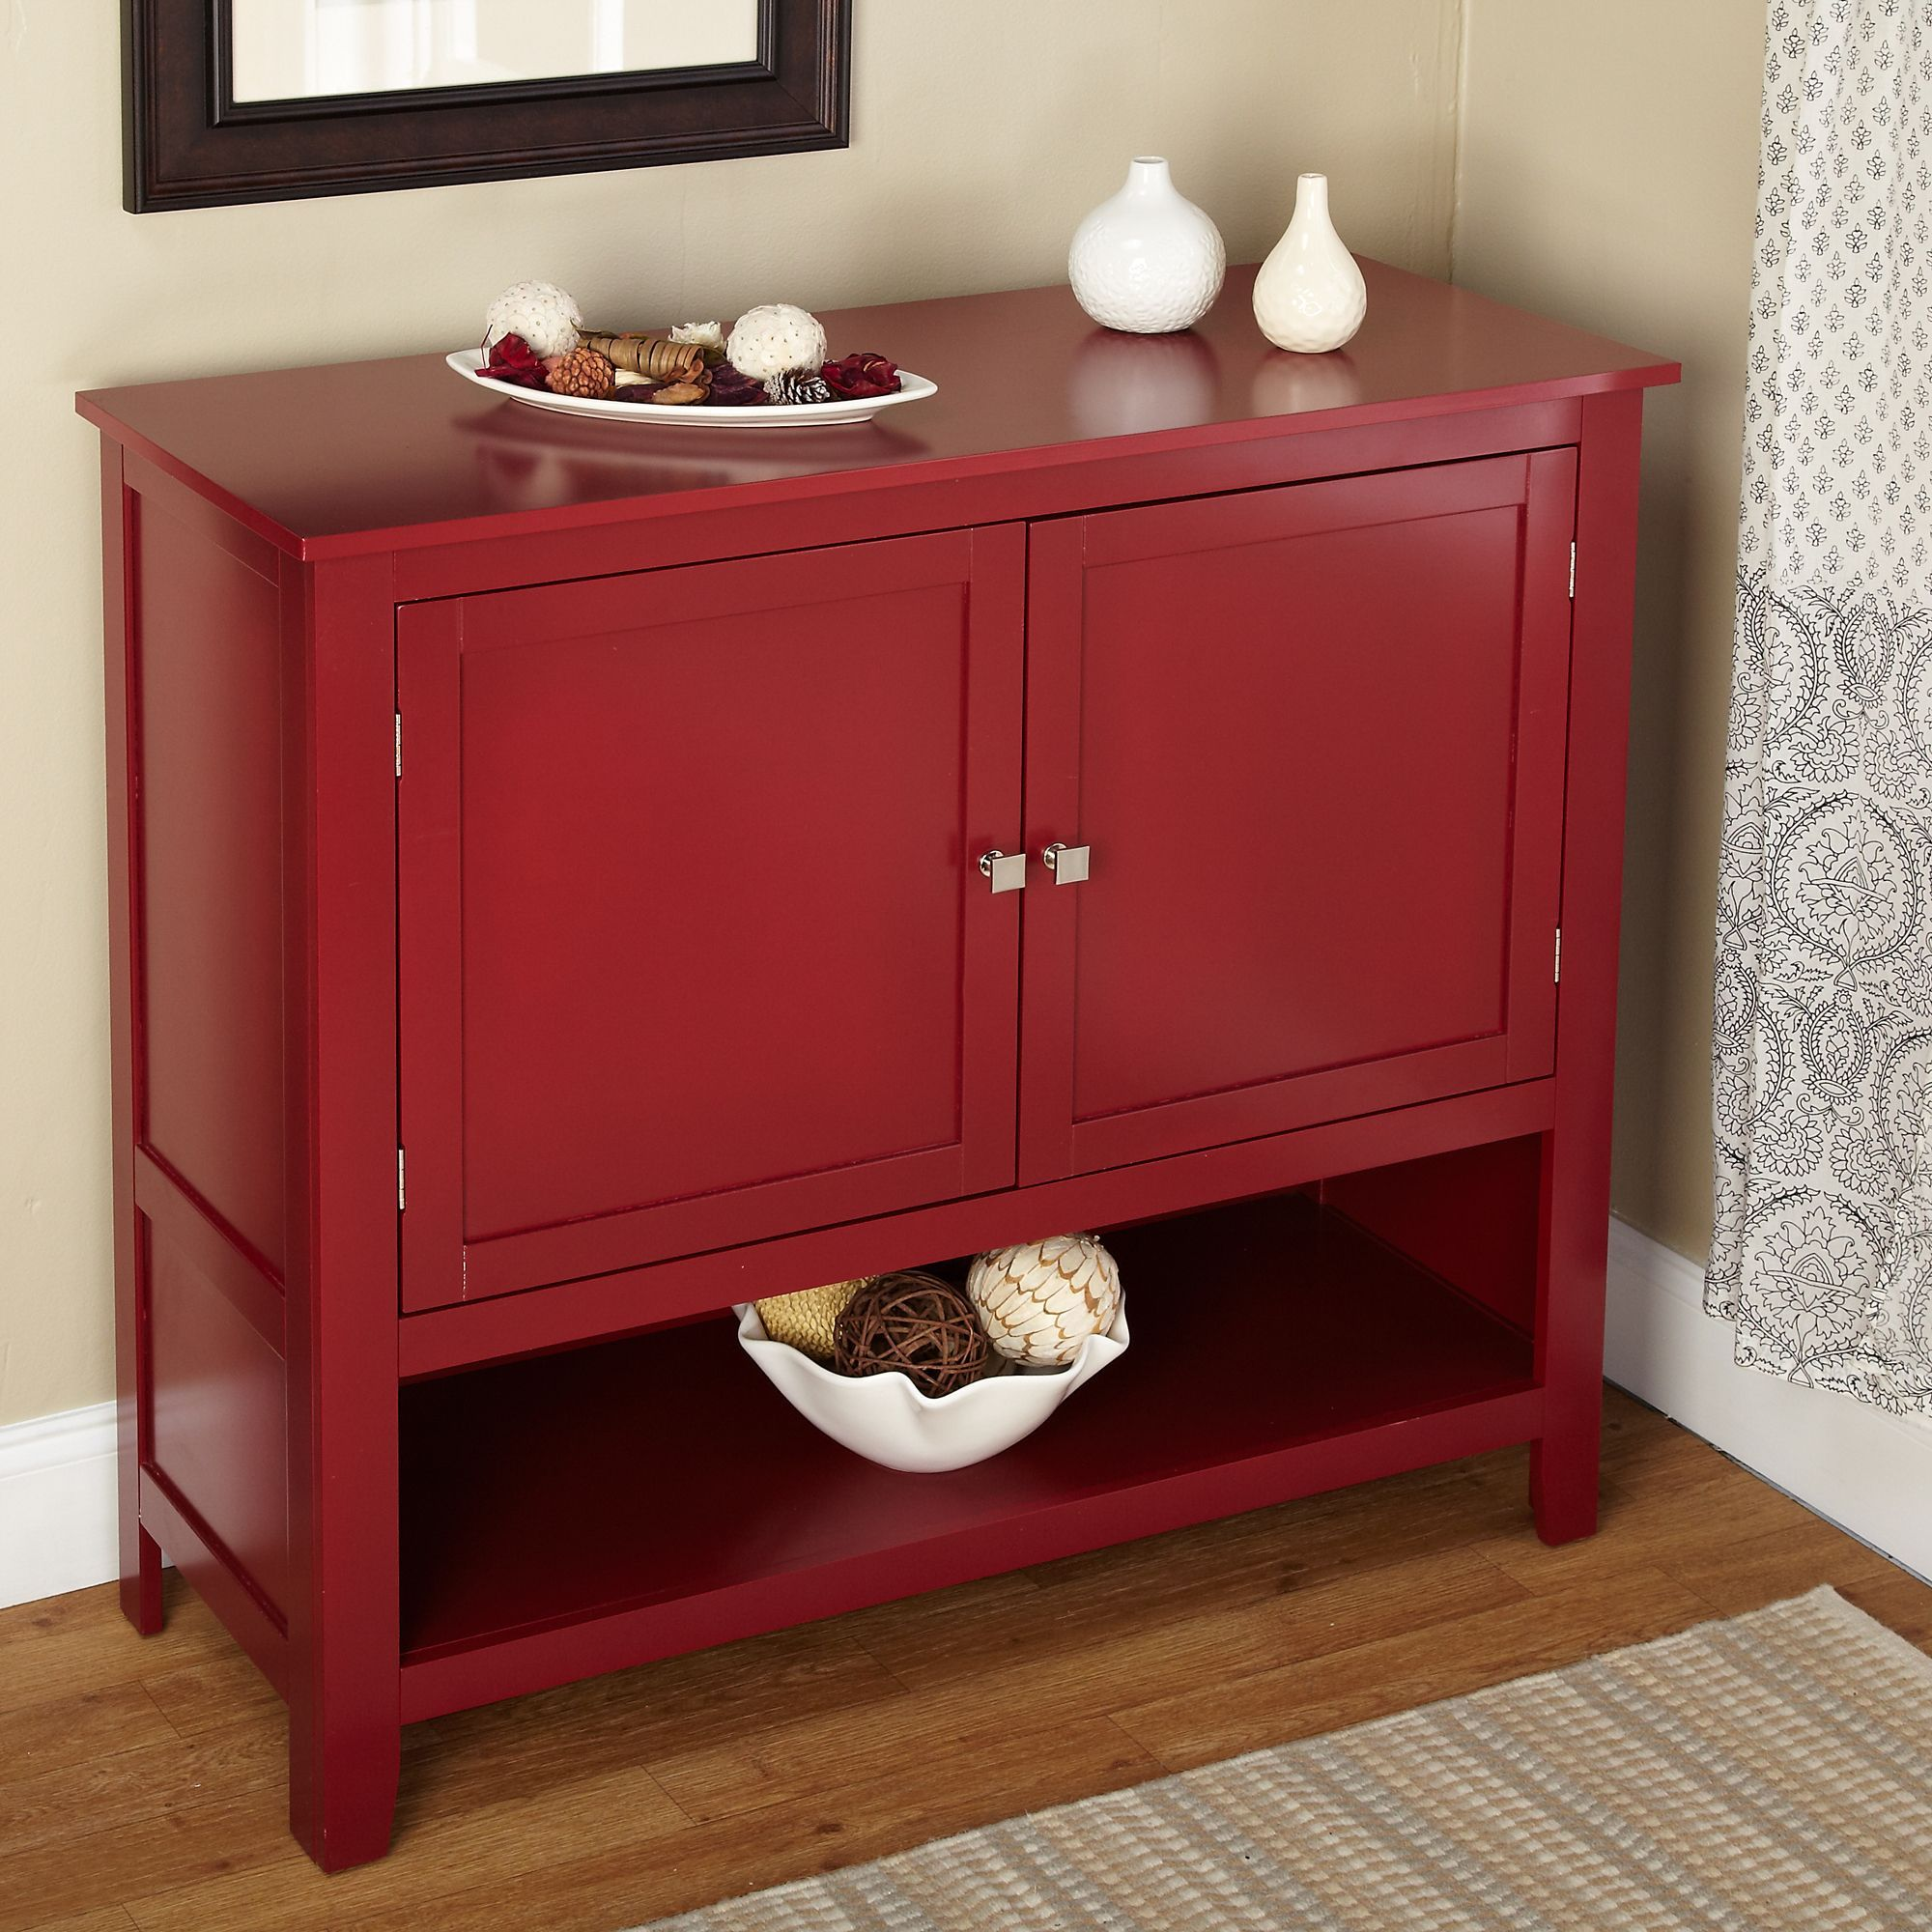 Open Kitchen Buffet: Providing Added Storage Space And A Touch Of Elegance Is